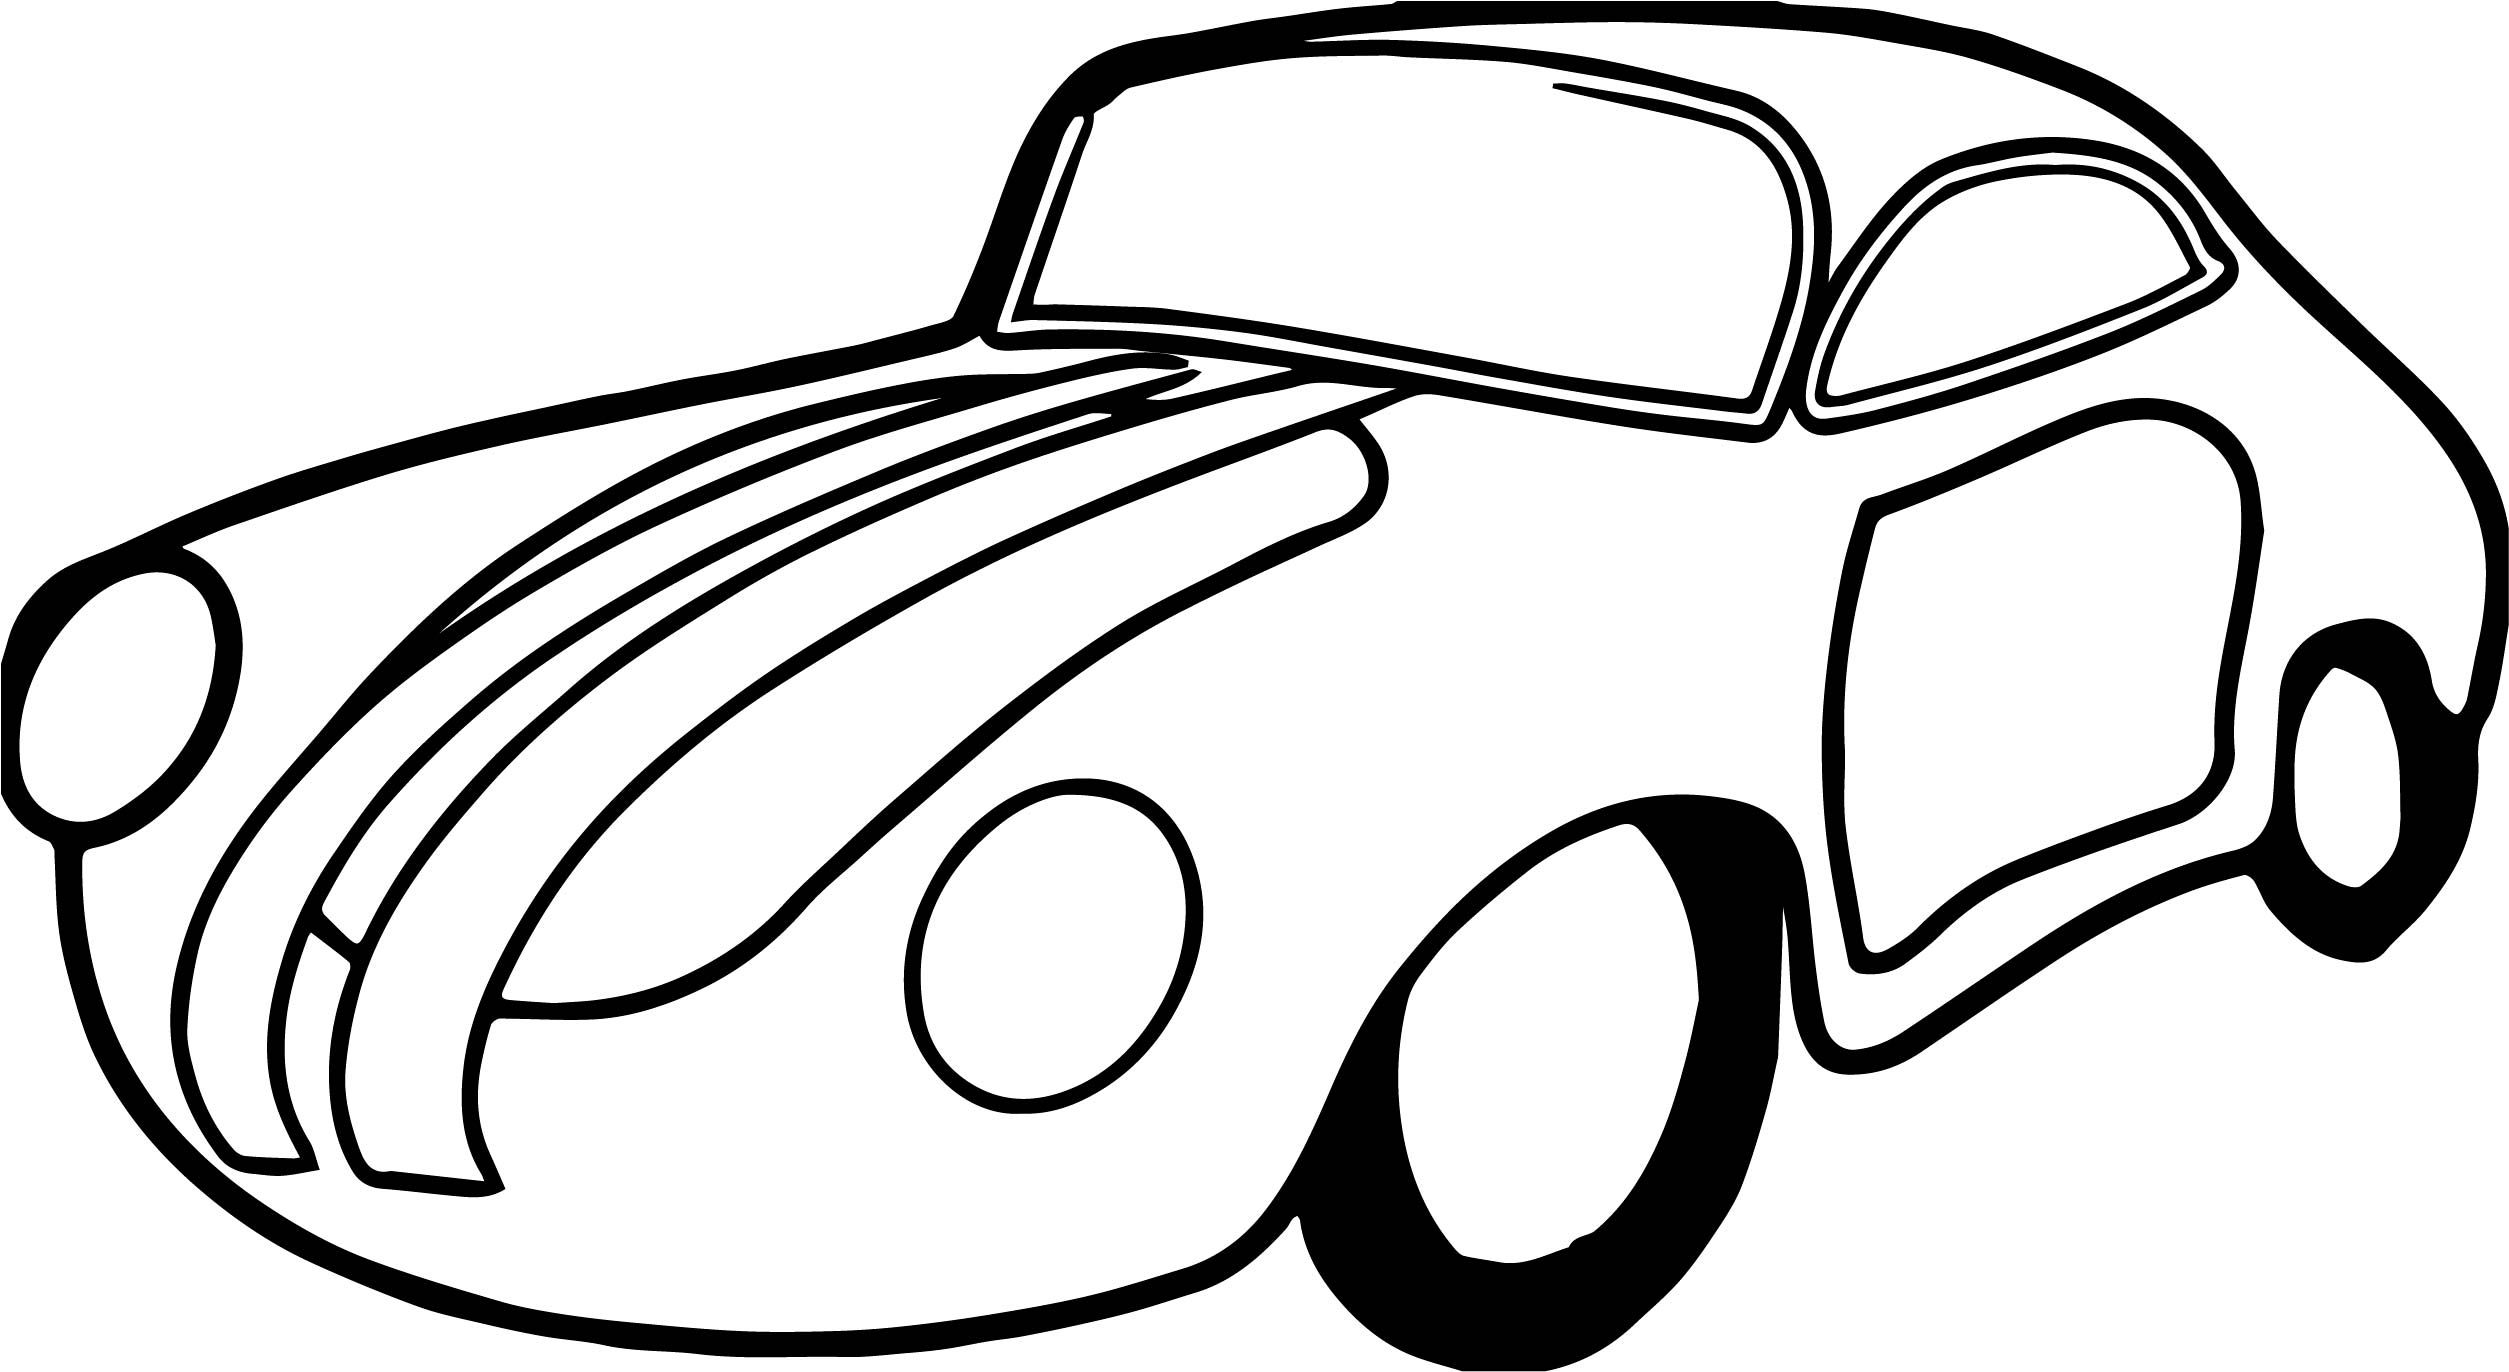 coloring toy car toy car coloring pages coloring pages to download and print coloring car toy